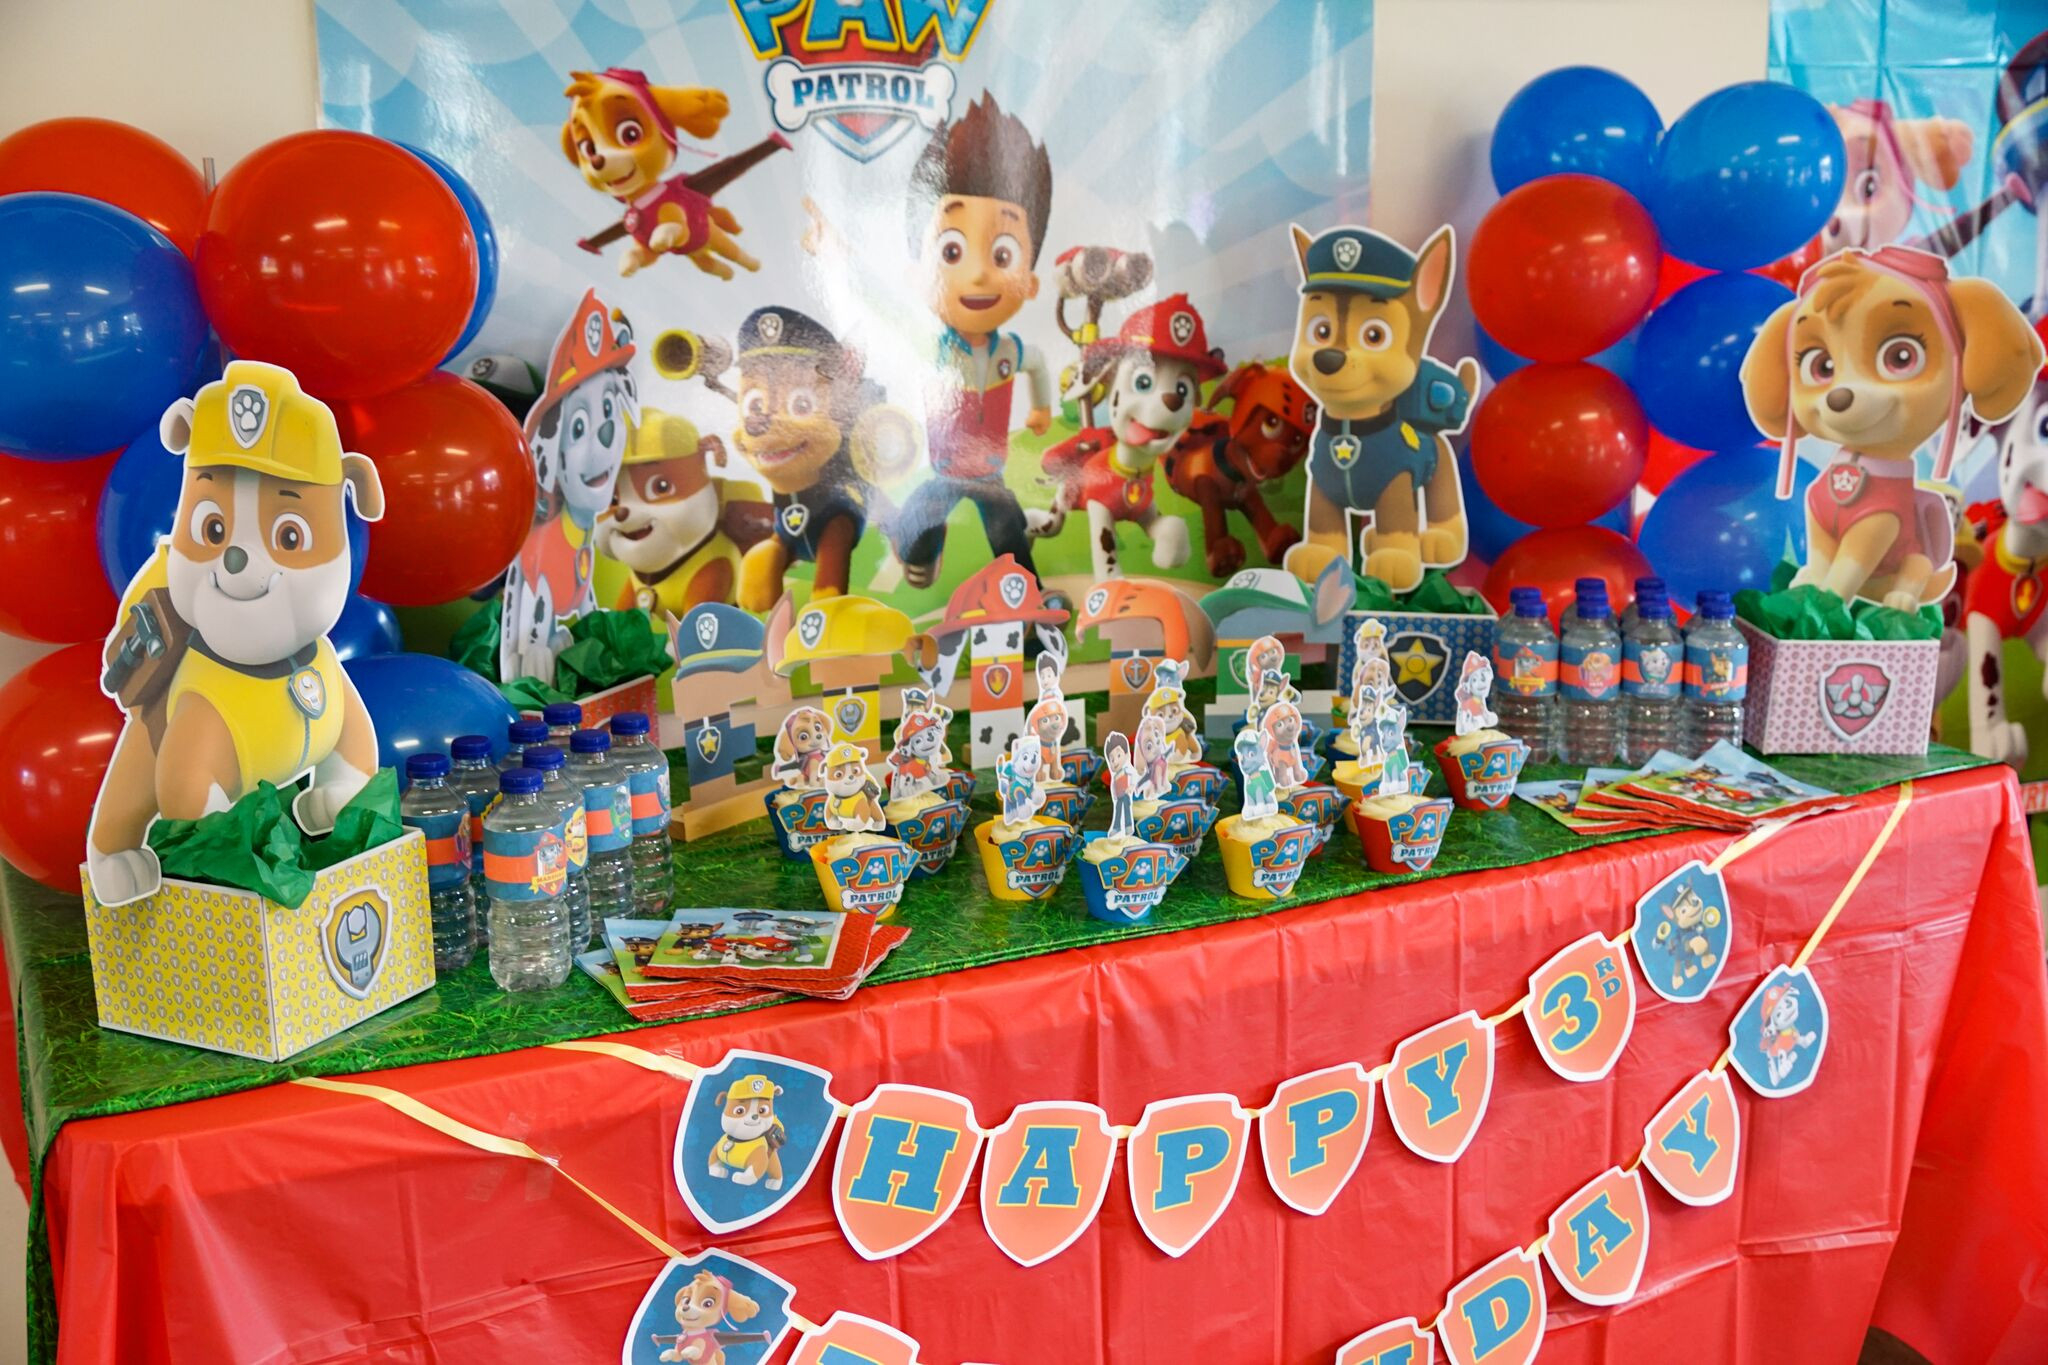 Paw Patrol Birthday Cake Toppers Paw Patrol Birthday Cake Toppers Cakes Skye Party Kit Decorations